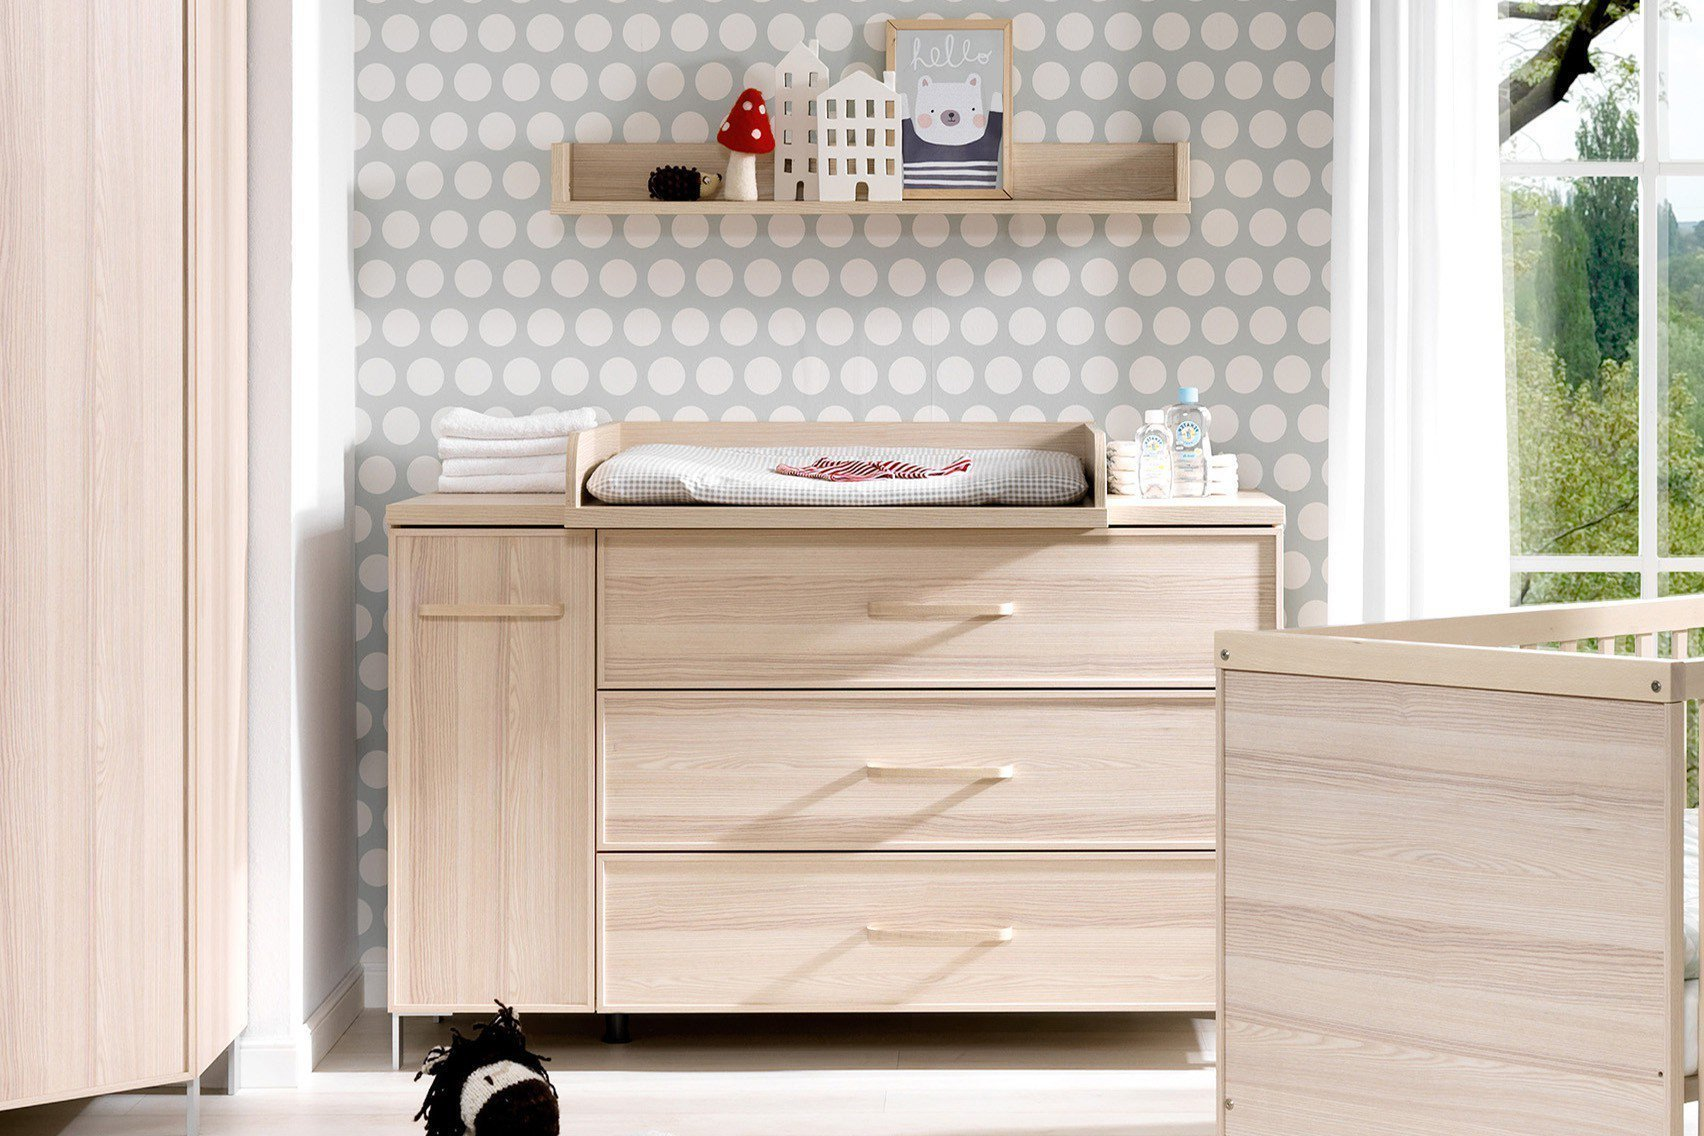 welle enie wickelkommode esche coimbra m bel letz ihr online shop. Black Bedroom Furniture Sets. Home Design Ideas